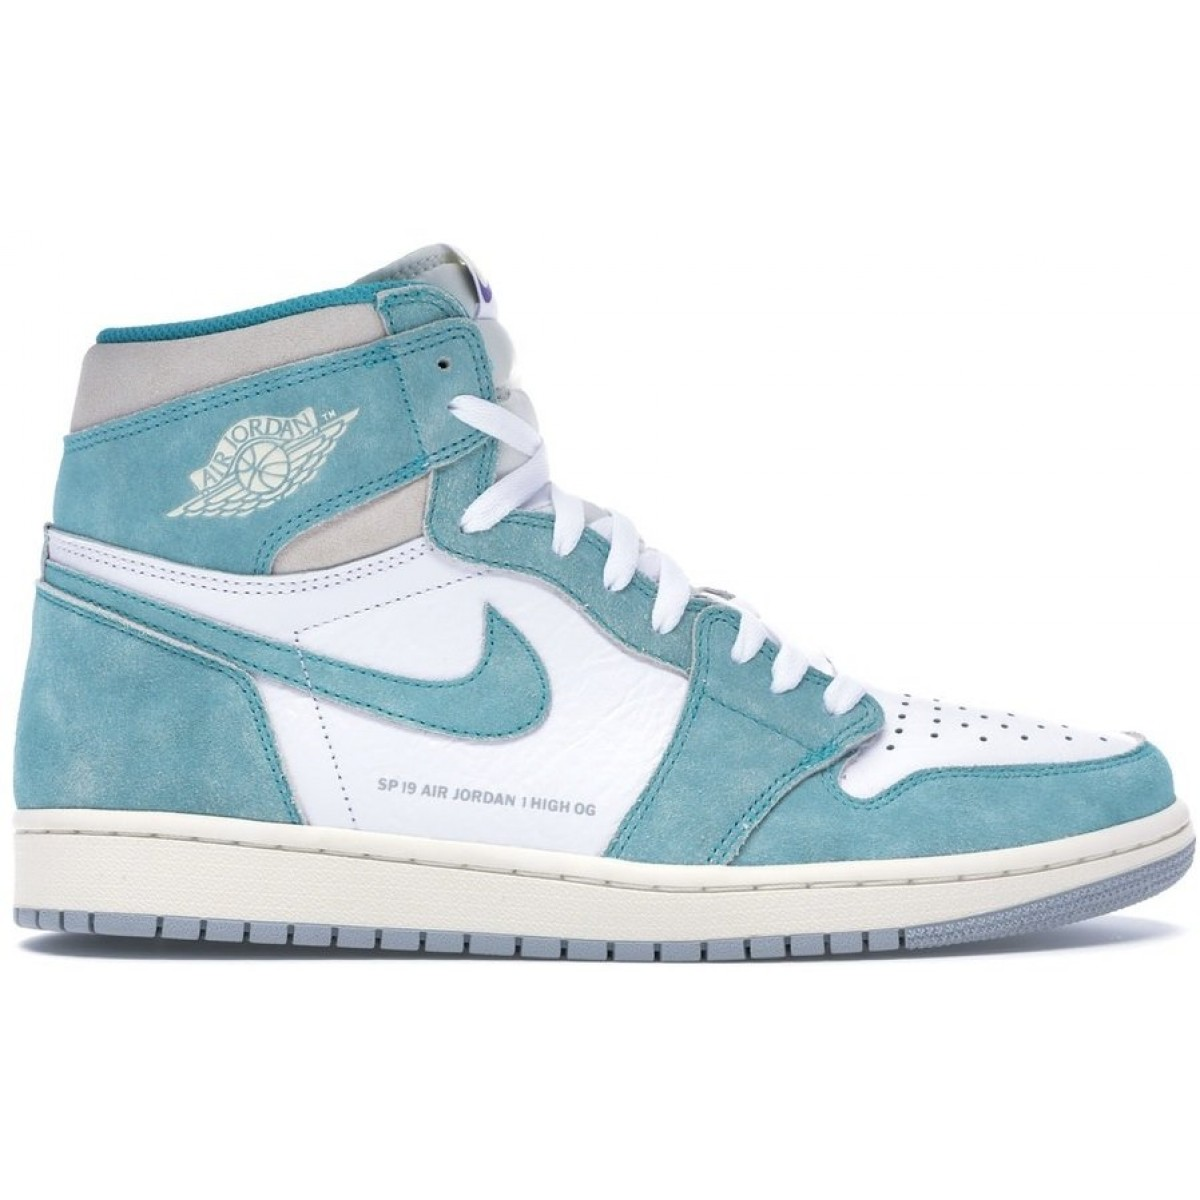 Jordan 1 Retro High Turbo Green 555088-311